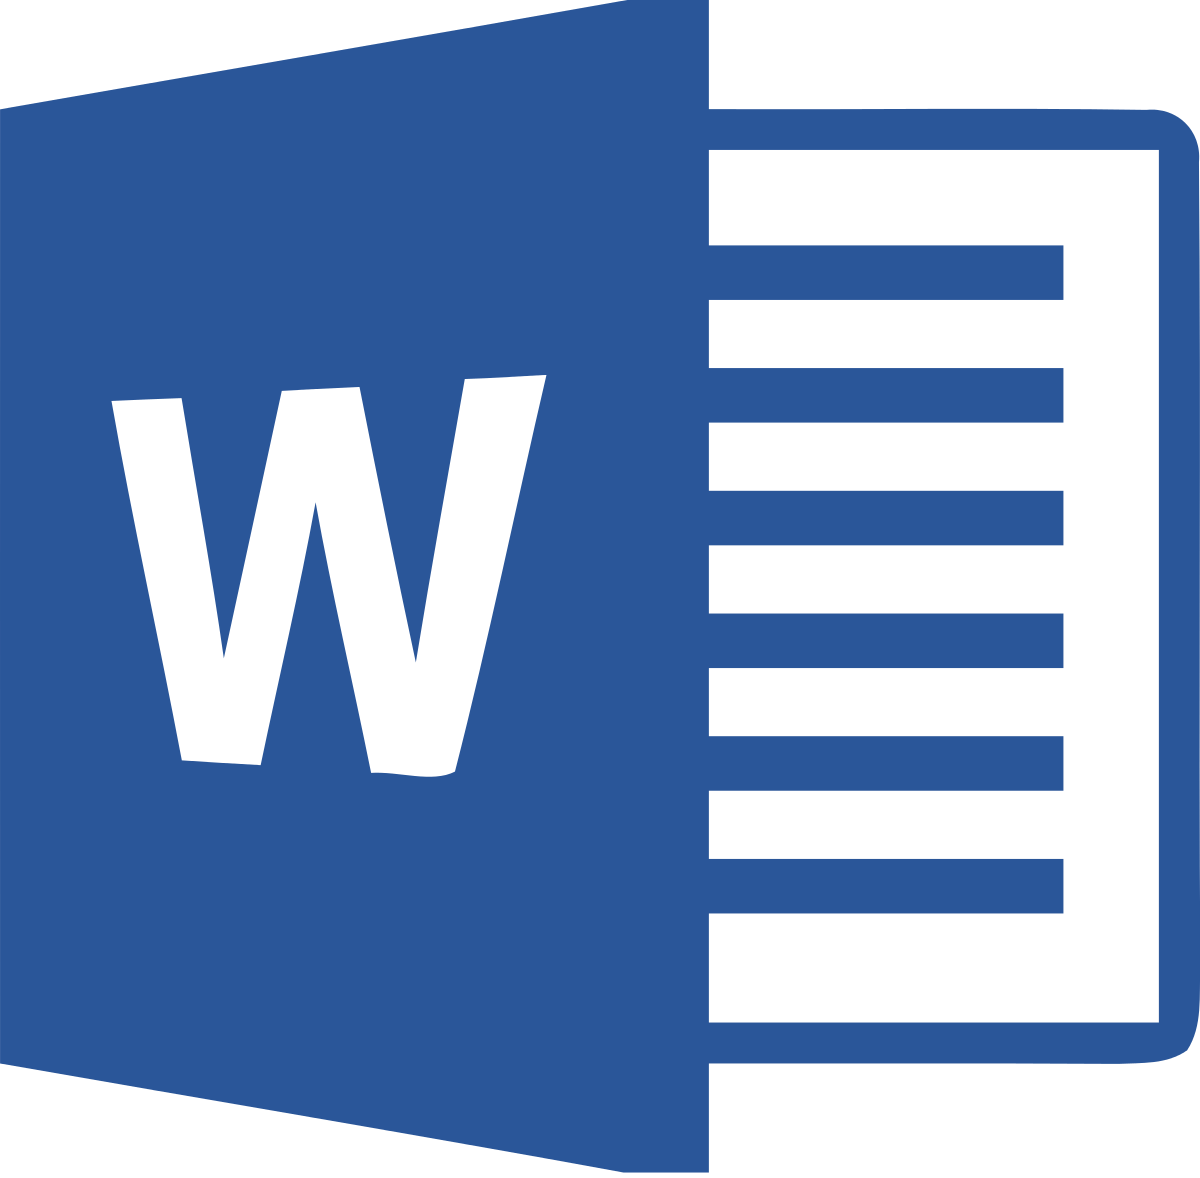 More MS Word 4/29